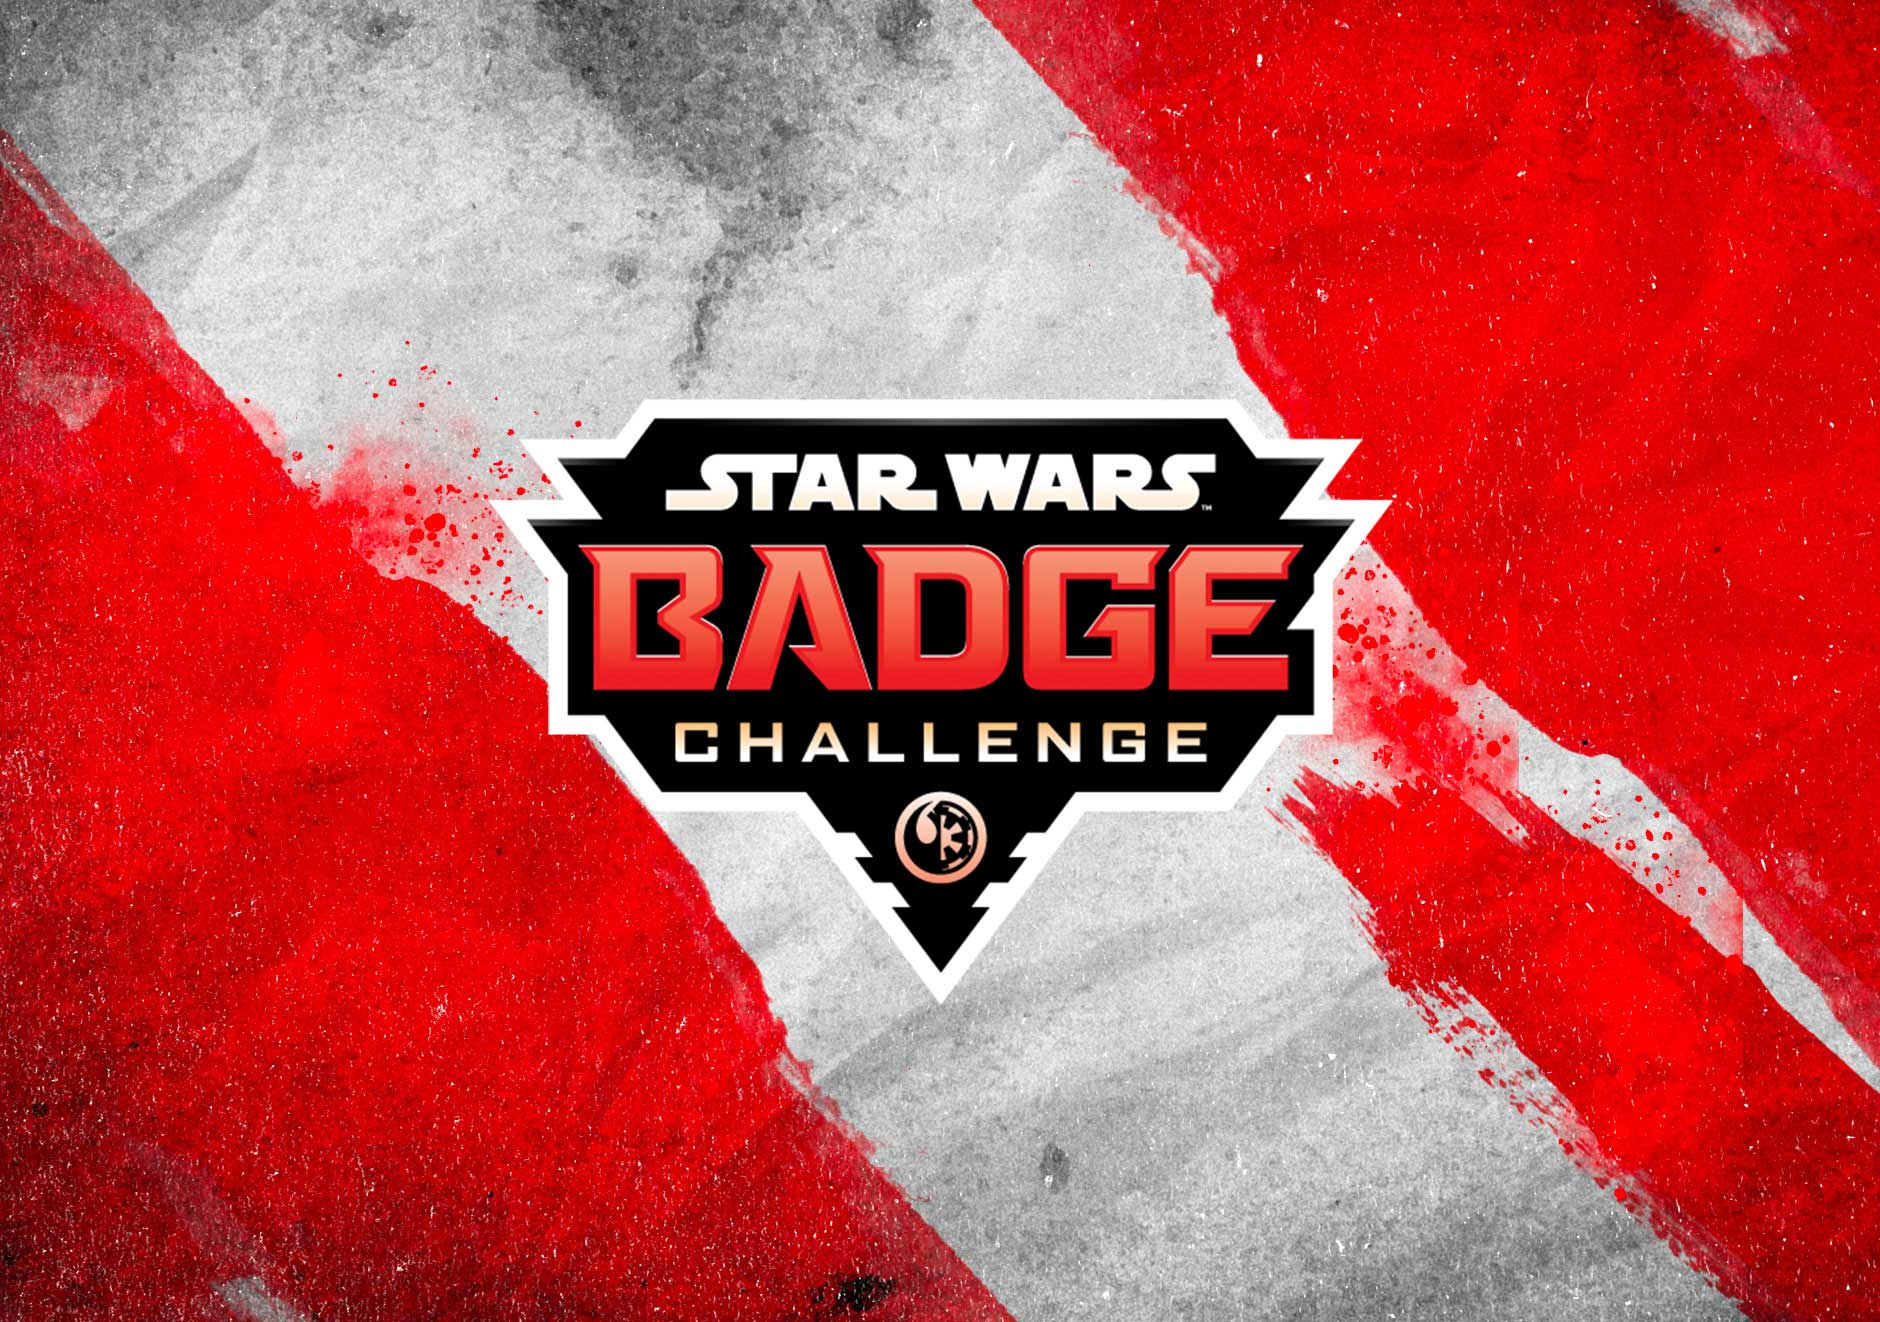 star wars badge challenge